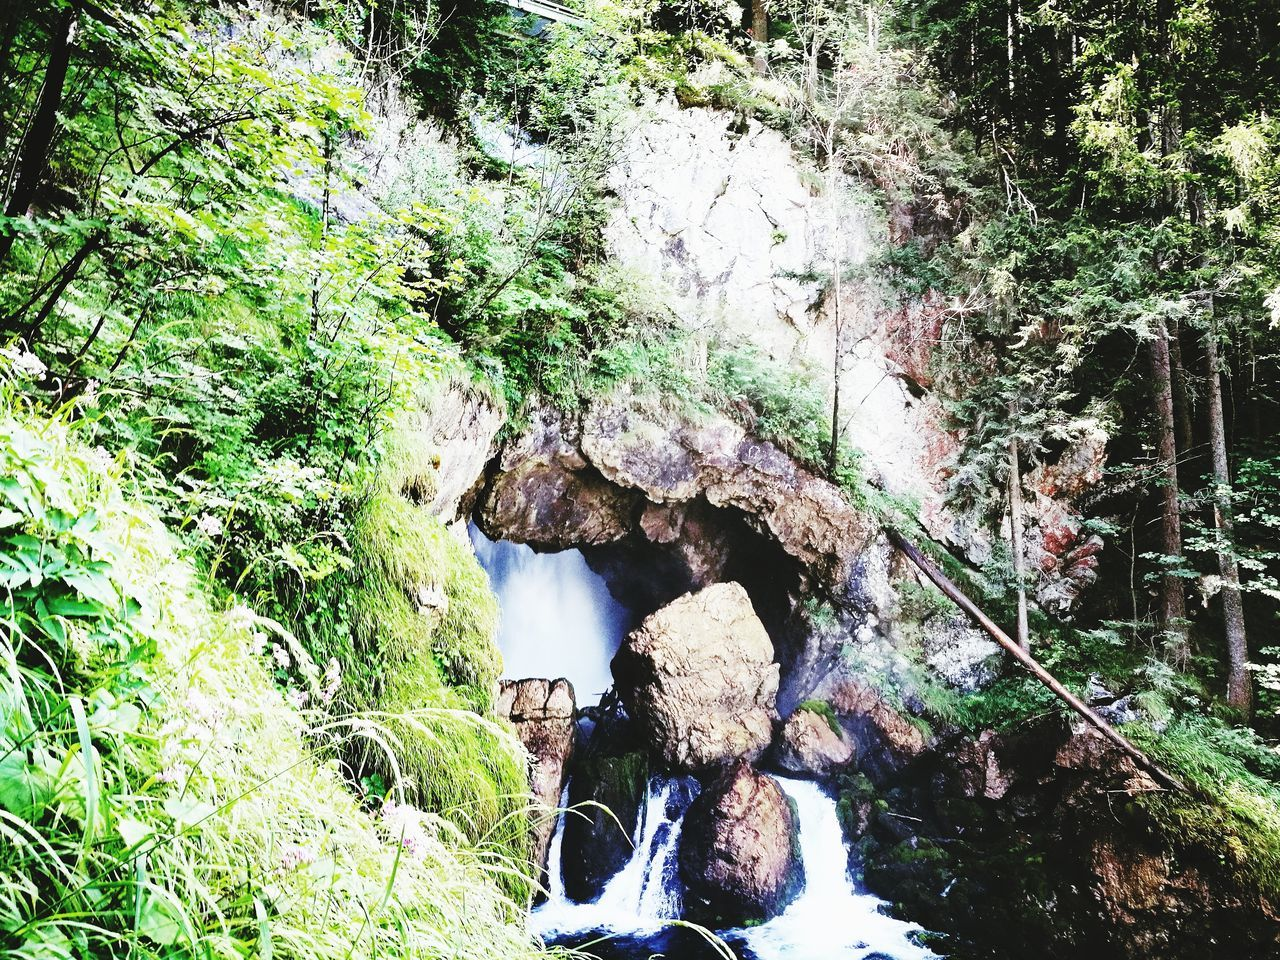 water, rock - object, nature, waterfall, motion, river, day, beauty in nature, outdoors, no people, waterfront, bridge - man made structure, scenics, forest, tree